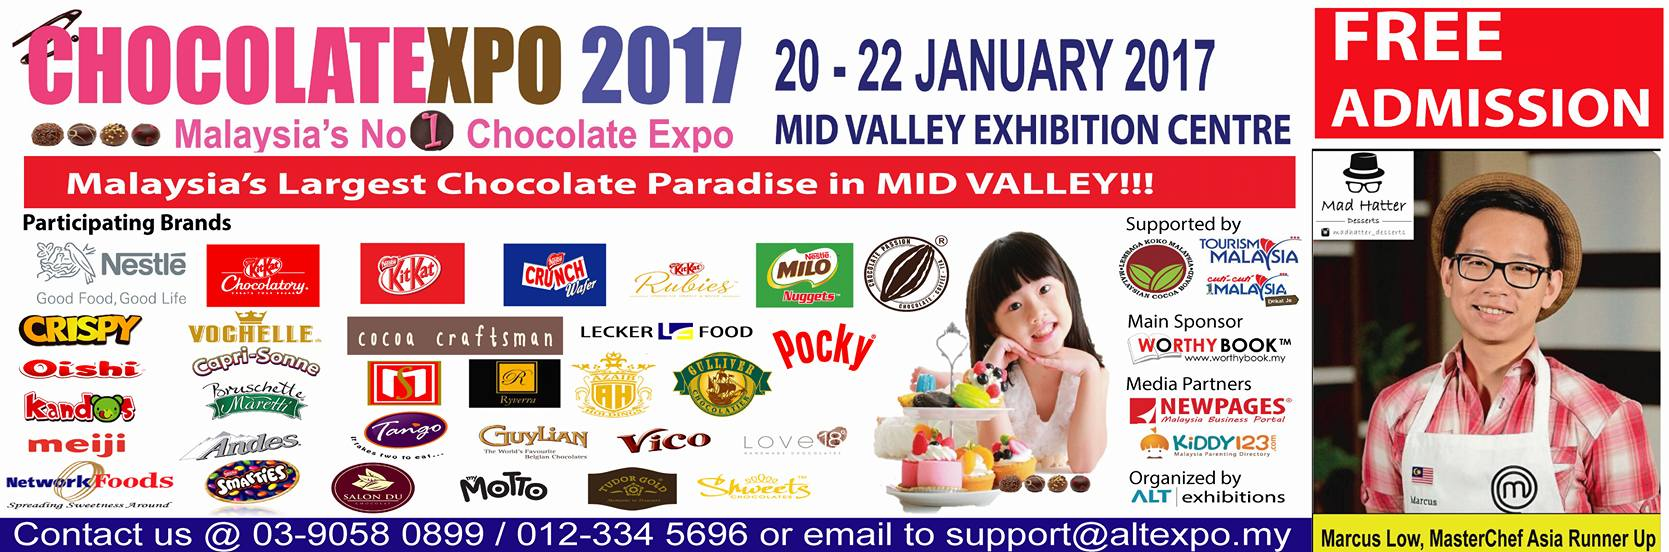 Image Credit: The 1st Malaysia Chocolate Expo 2017 Facebook